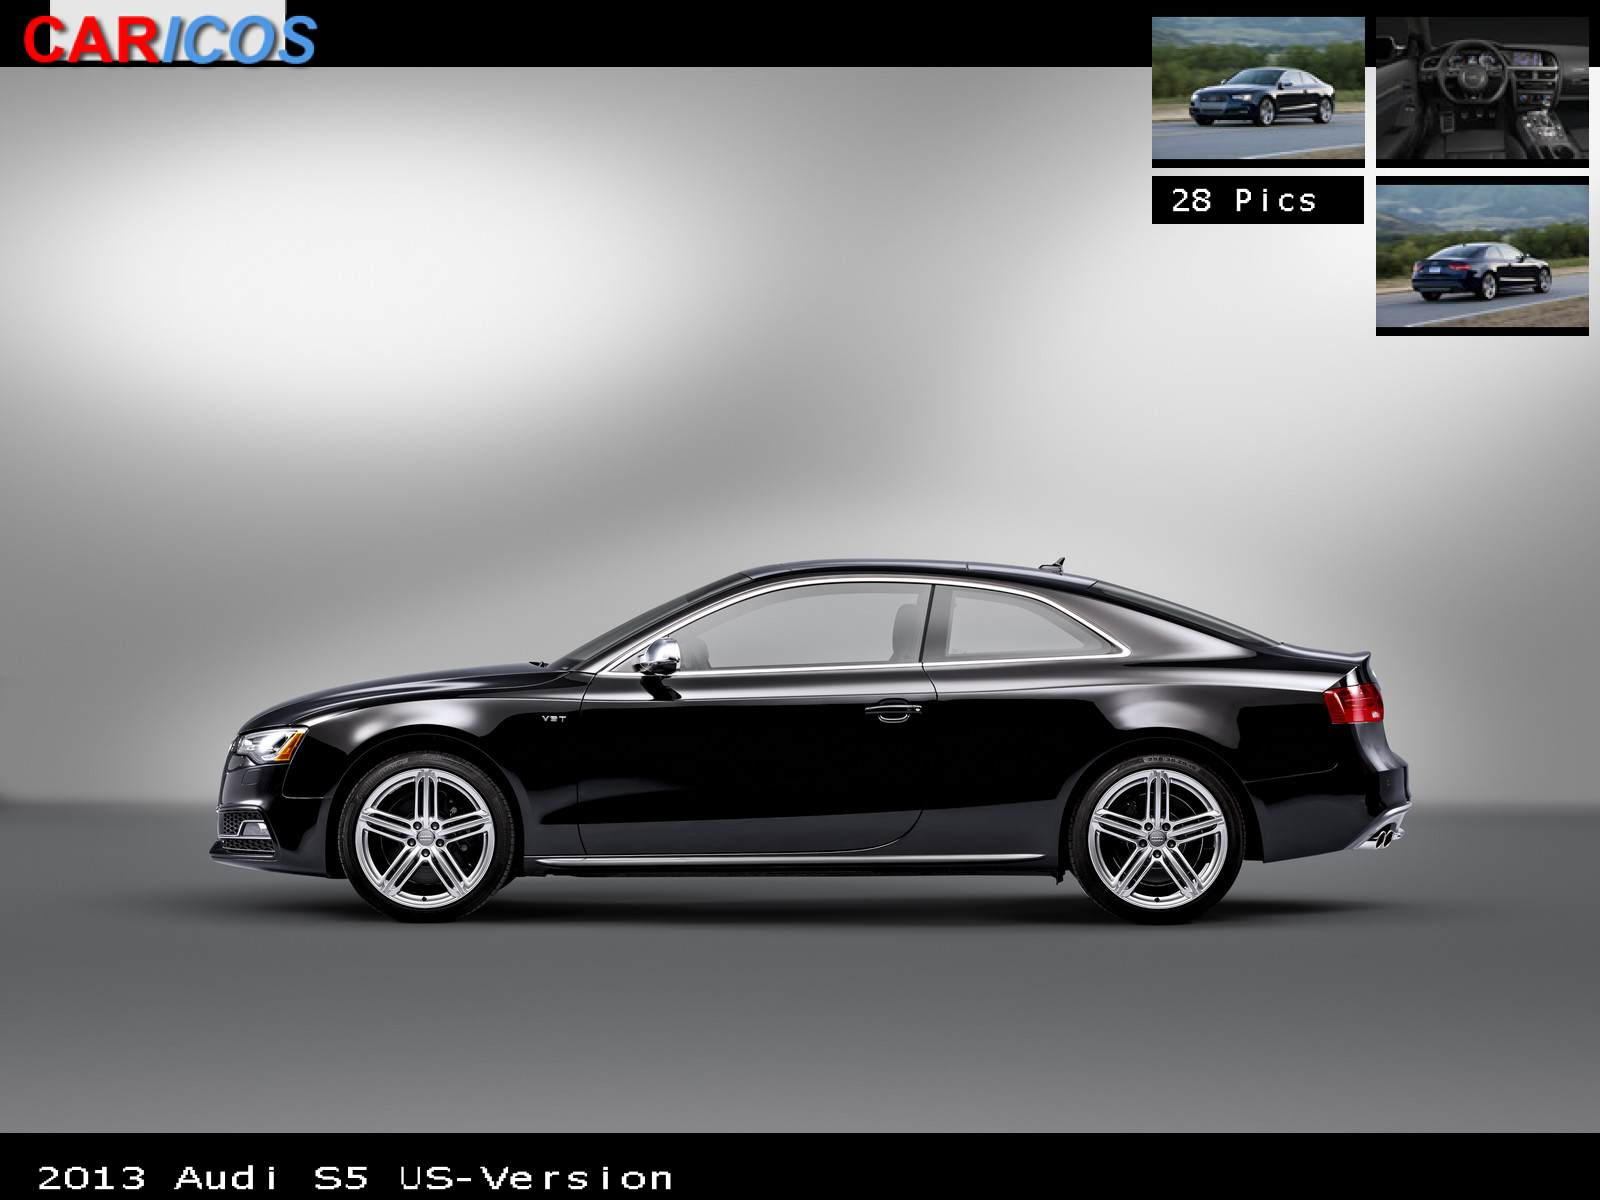 Audi S5 Wallpaper 4280 Hd Wallpapers in Cars   Imagescicom 1600x1200